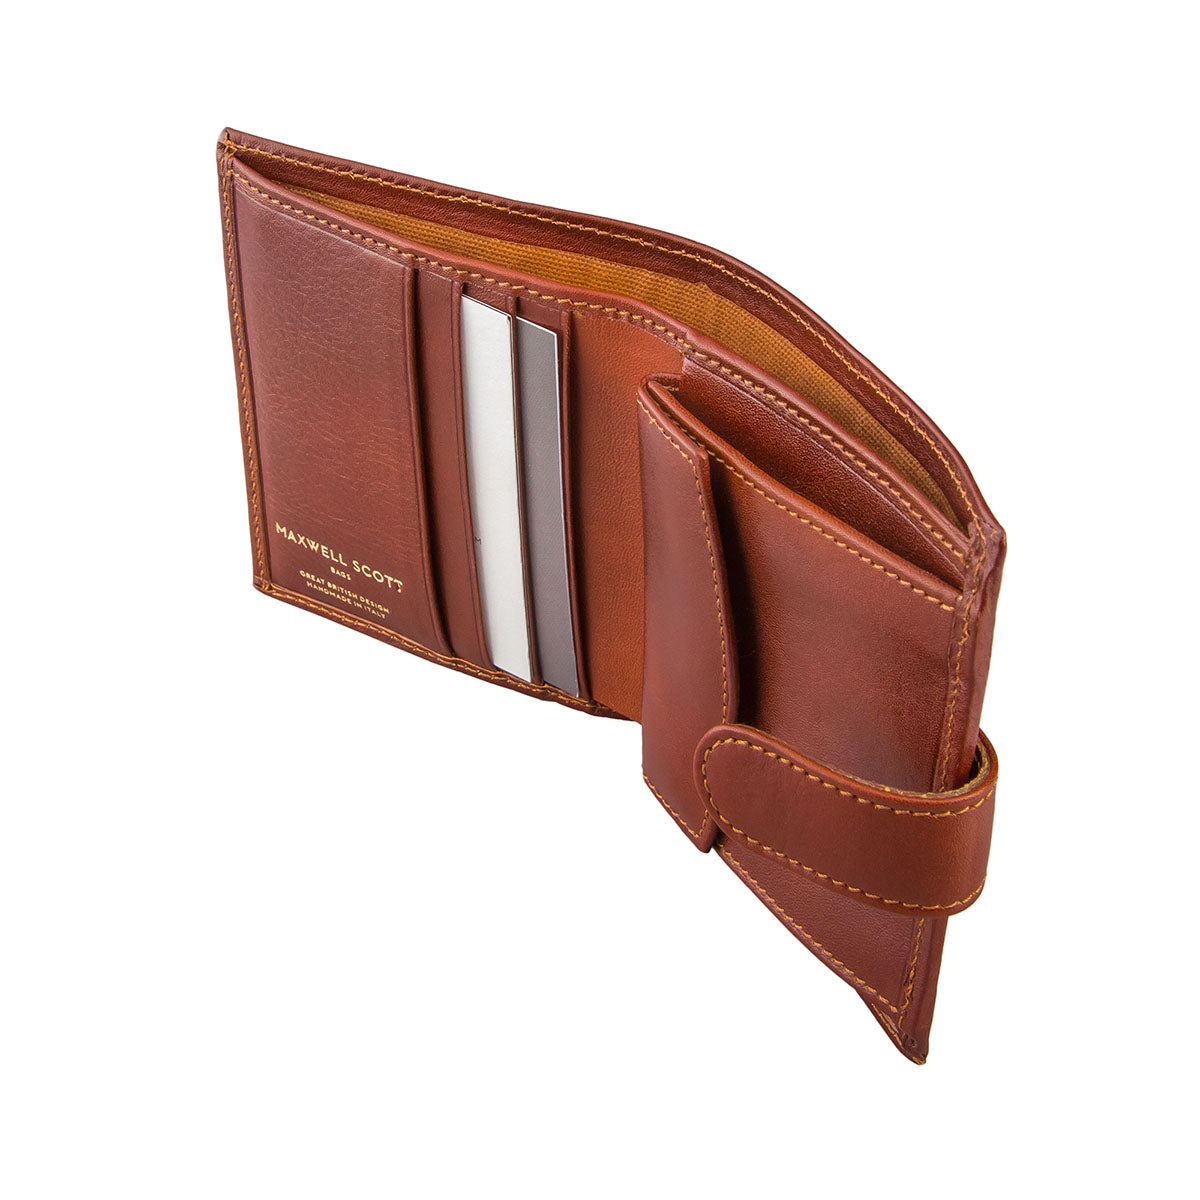 Image 4 of the 'Pietre' Chestnut Veg-Tanned Leather Compact Wallet